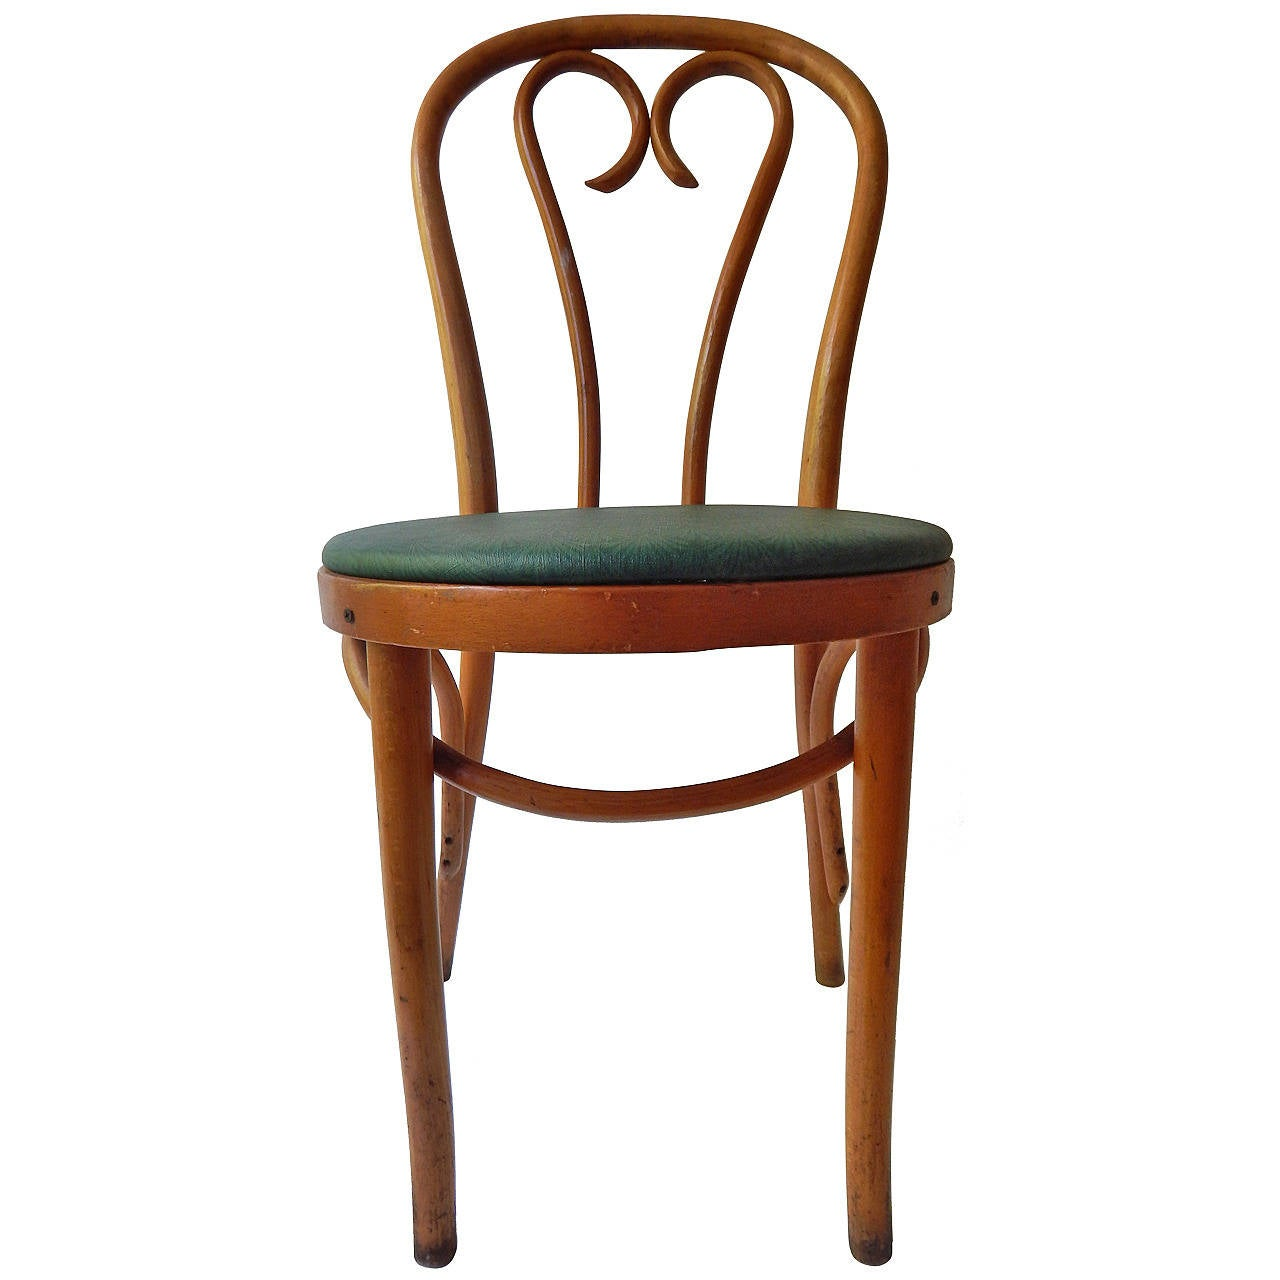 10 Thonet Bentwood Cafe Chairs For Sale At 1stdibs